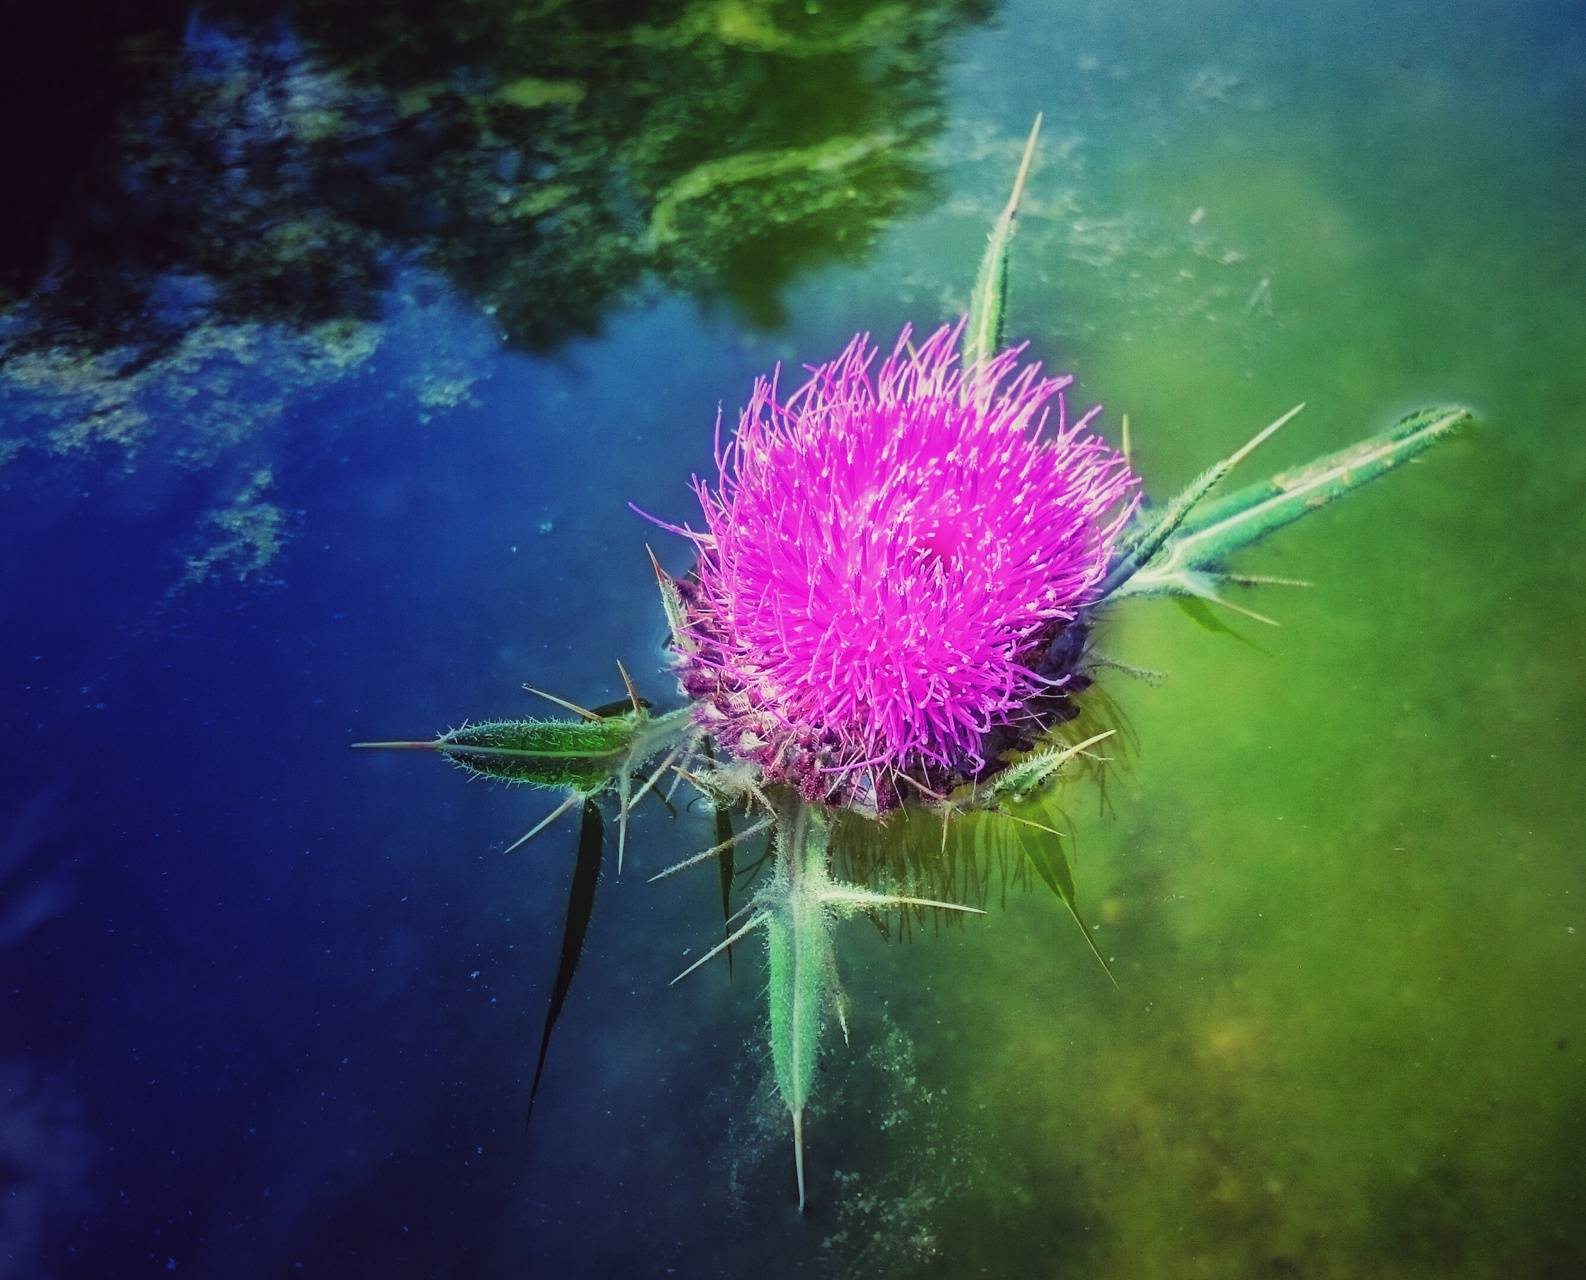 Thistle and the word